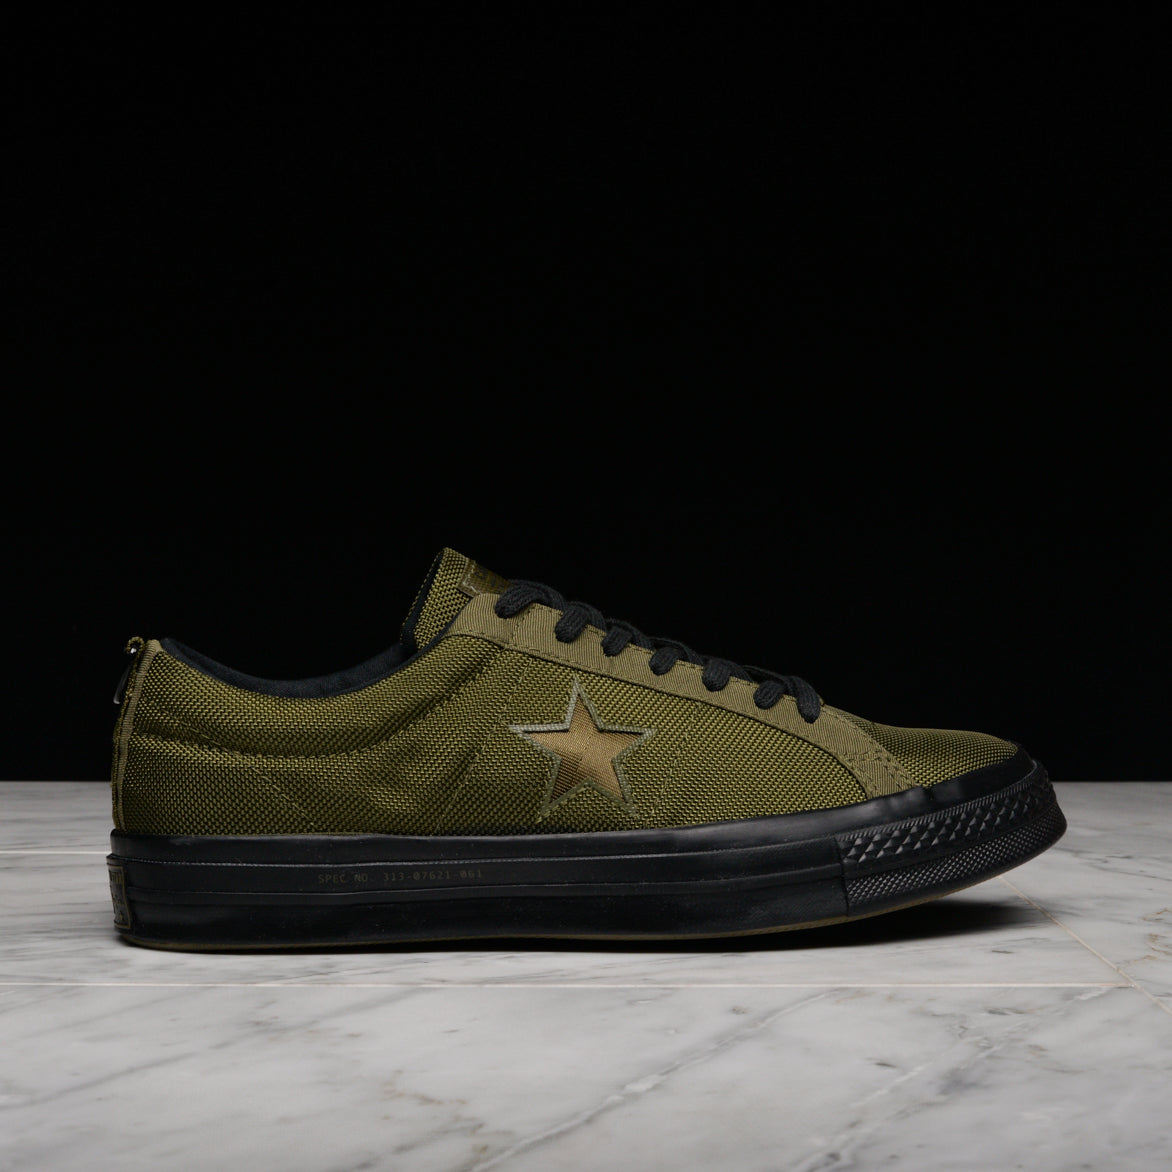 fc036e3661d CARHARTT WIP X CONVERSE ONE STAR OX - HERBAL   MEDIUM OLIVE ...